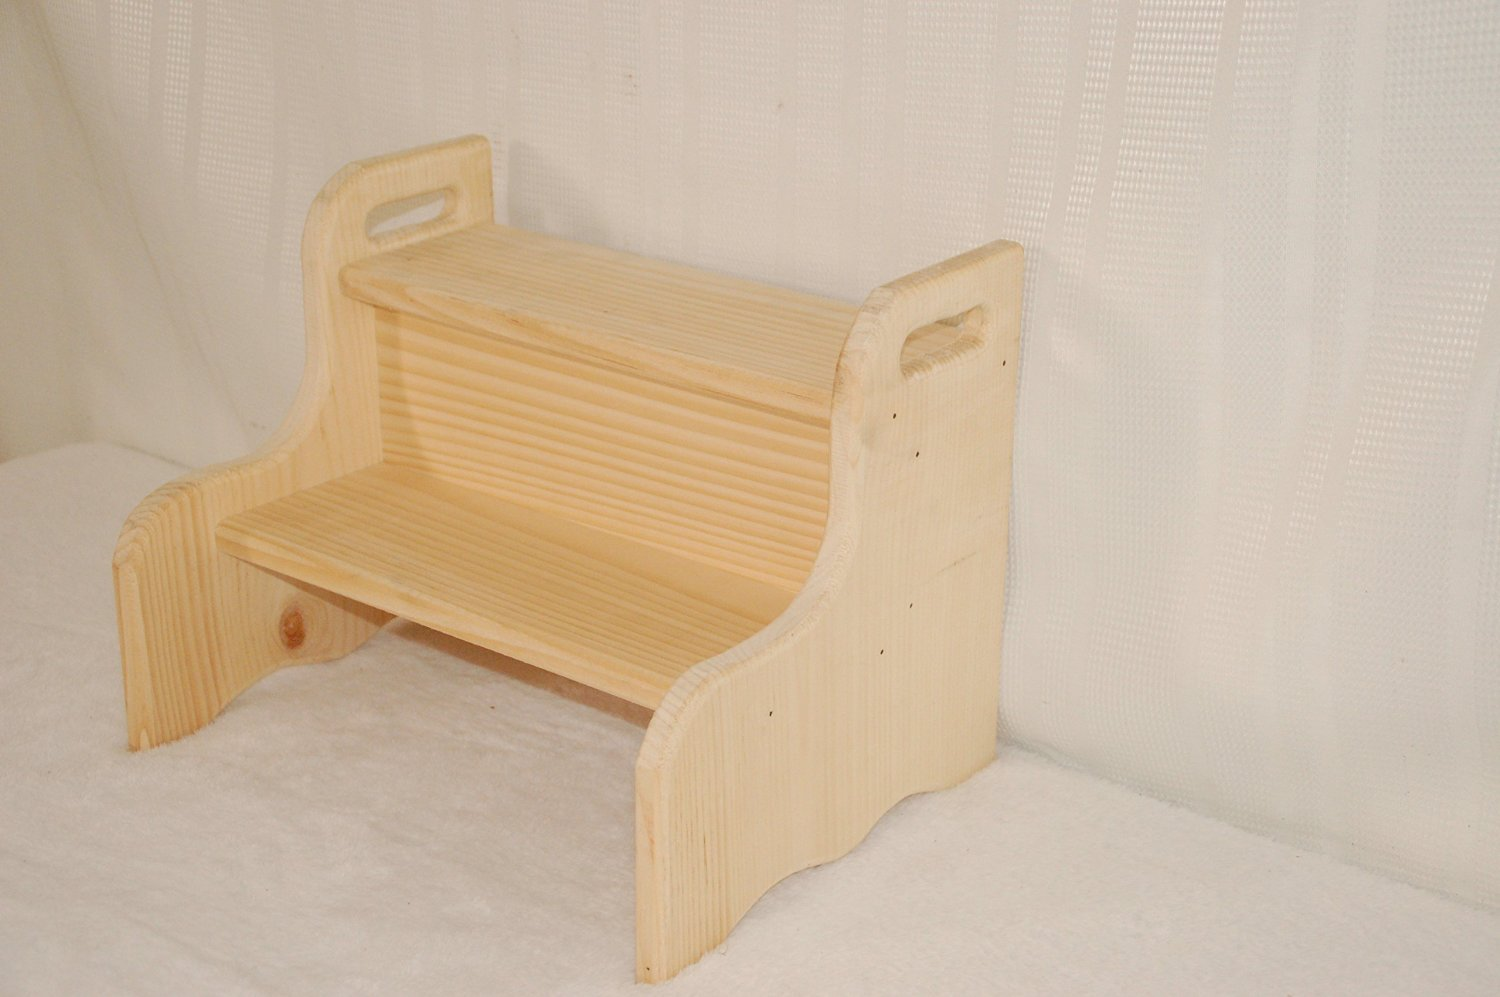 Kids Wooden Stool Unfinished Wooden Step Stools For Kids Thesteppingstool